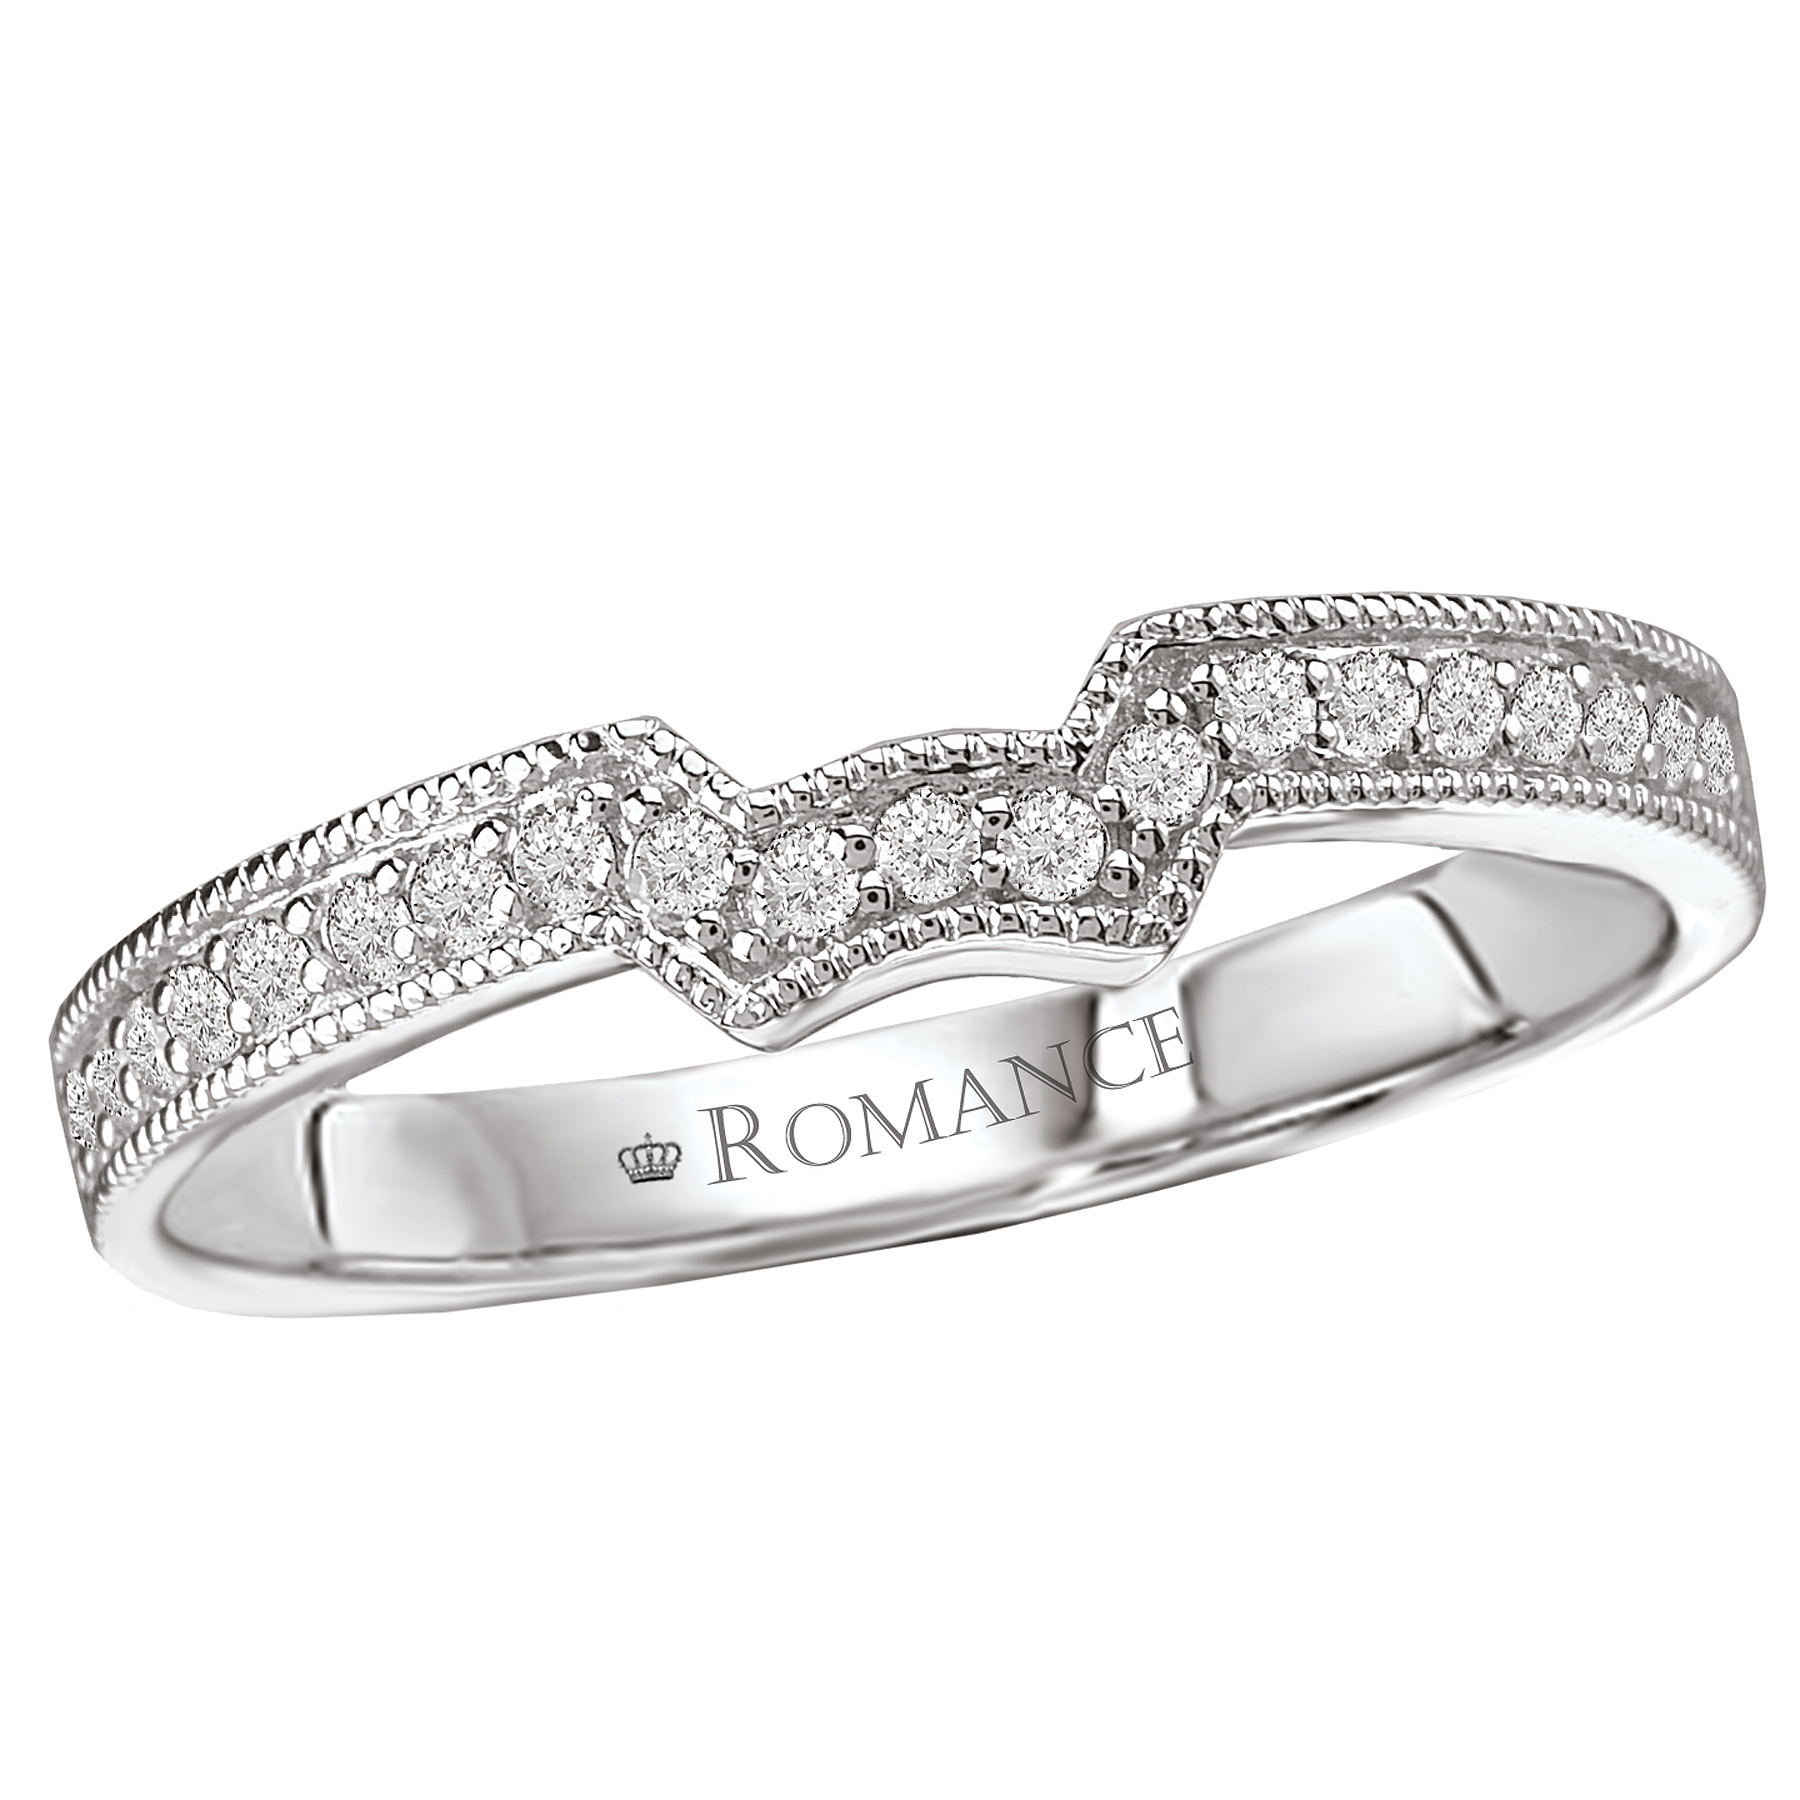 Romance Wedding Bands 117289-W product image